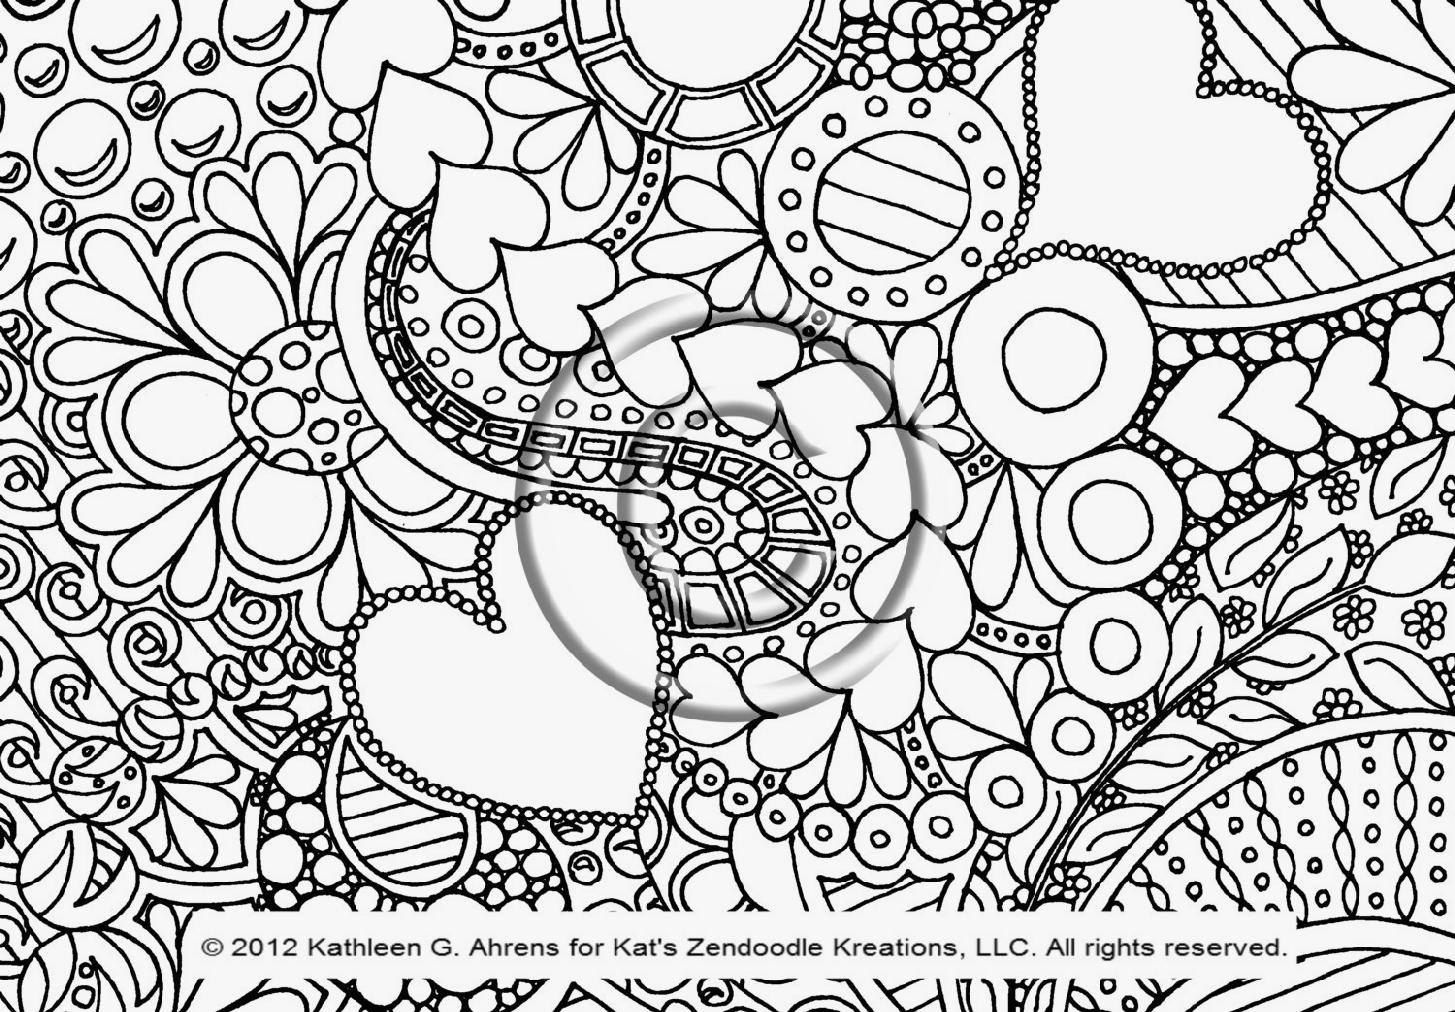 Cool Art Coloring Pages at GetDrawings.com | Free for personal use ...